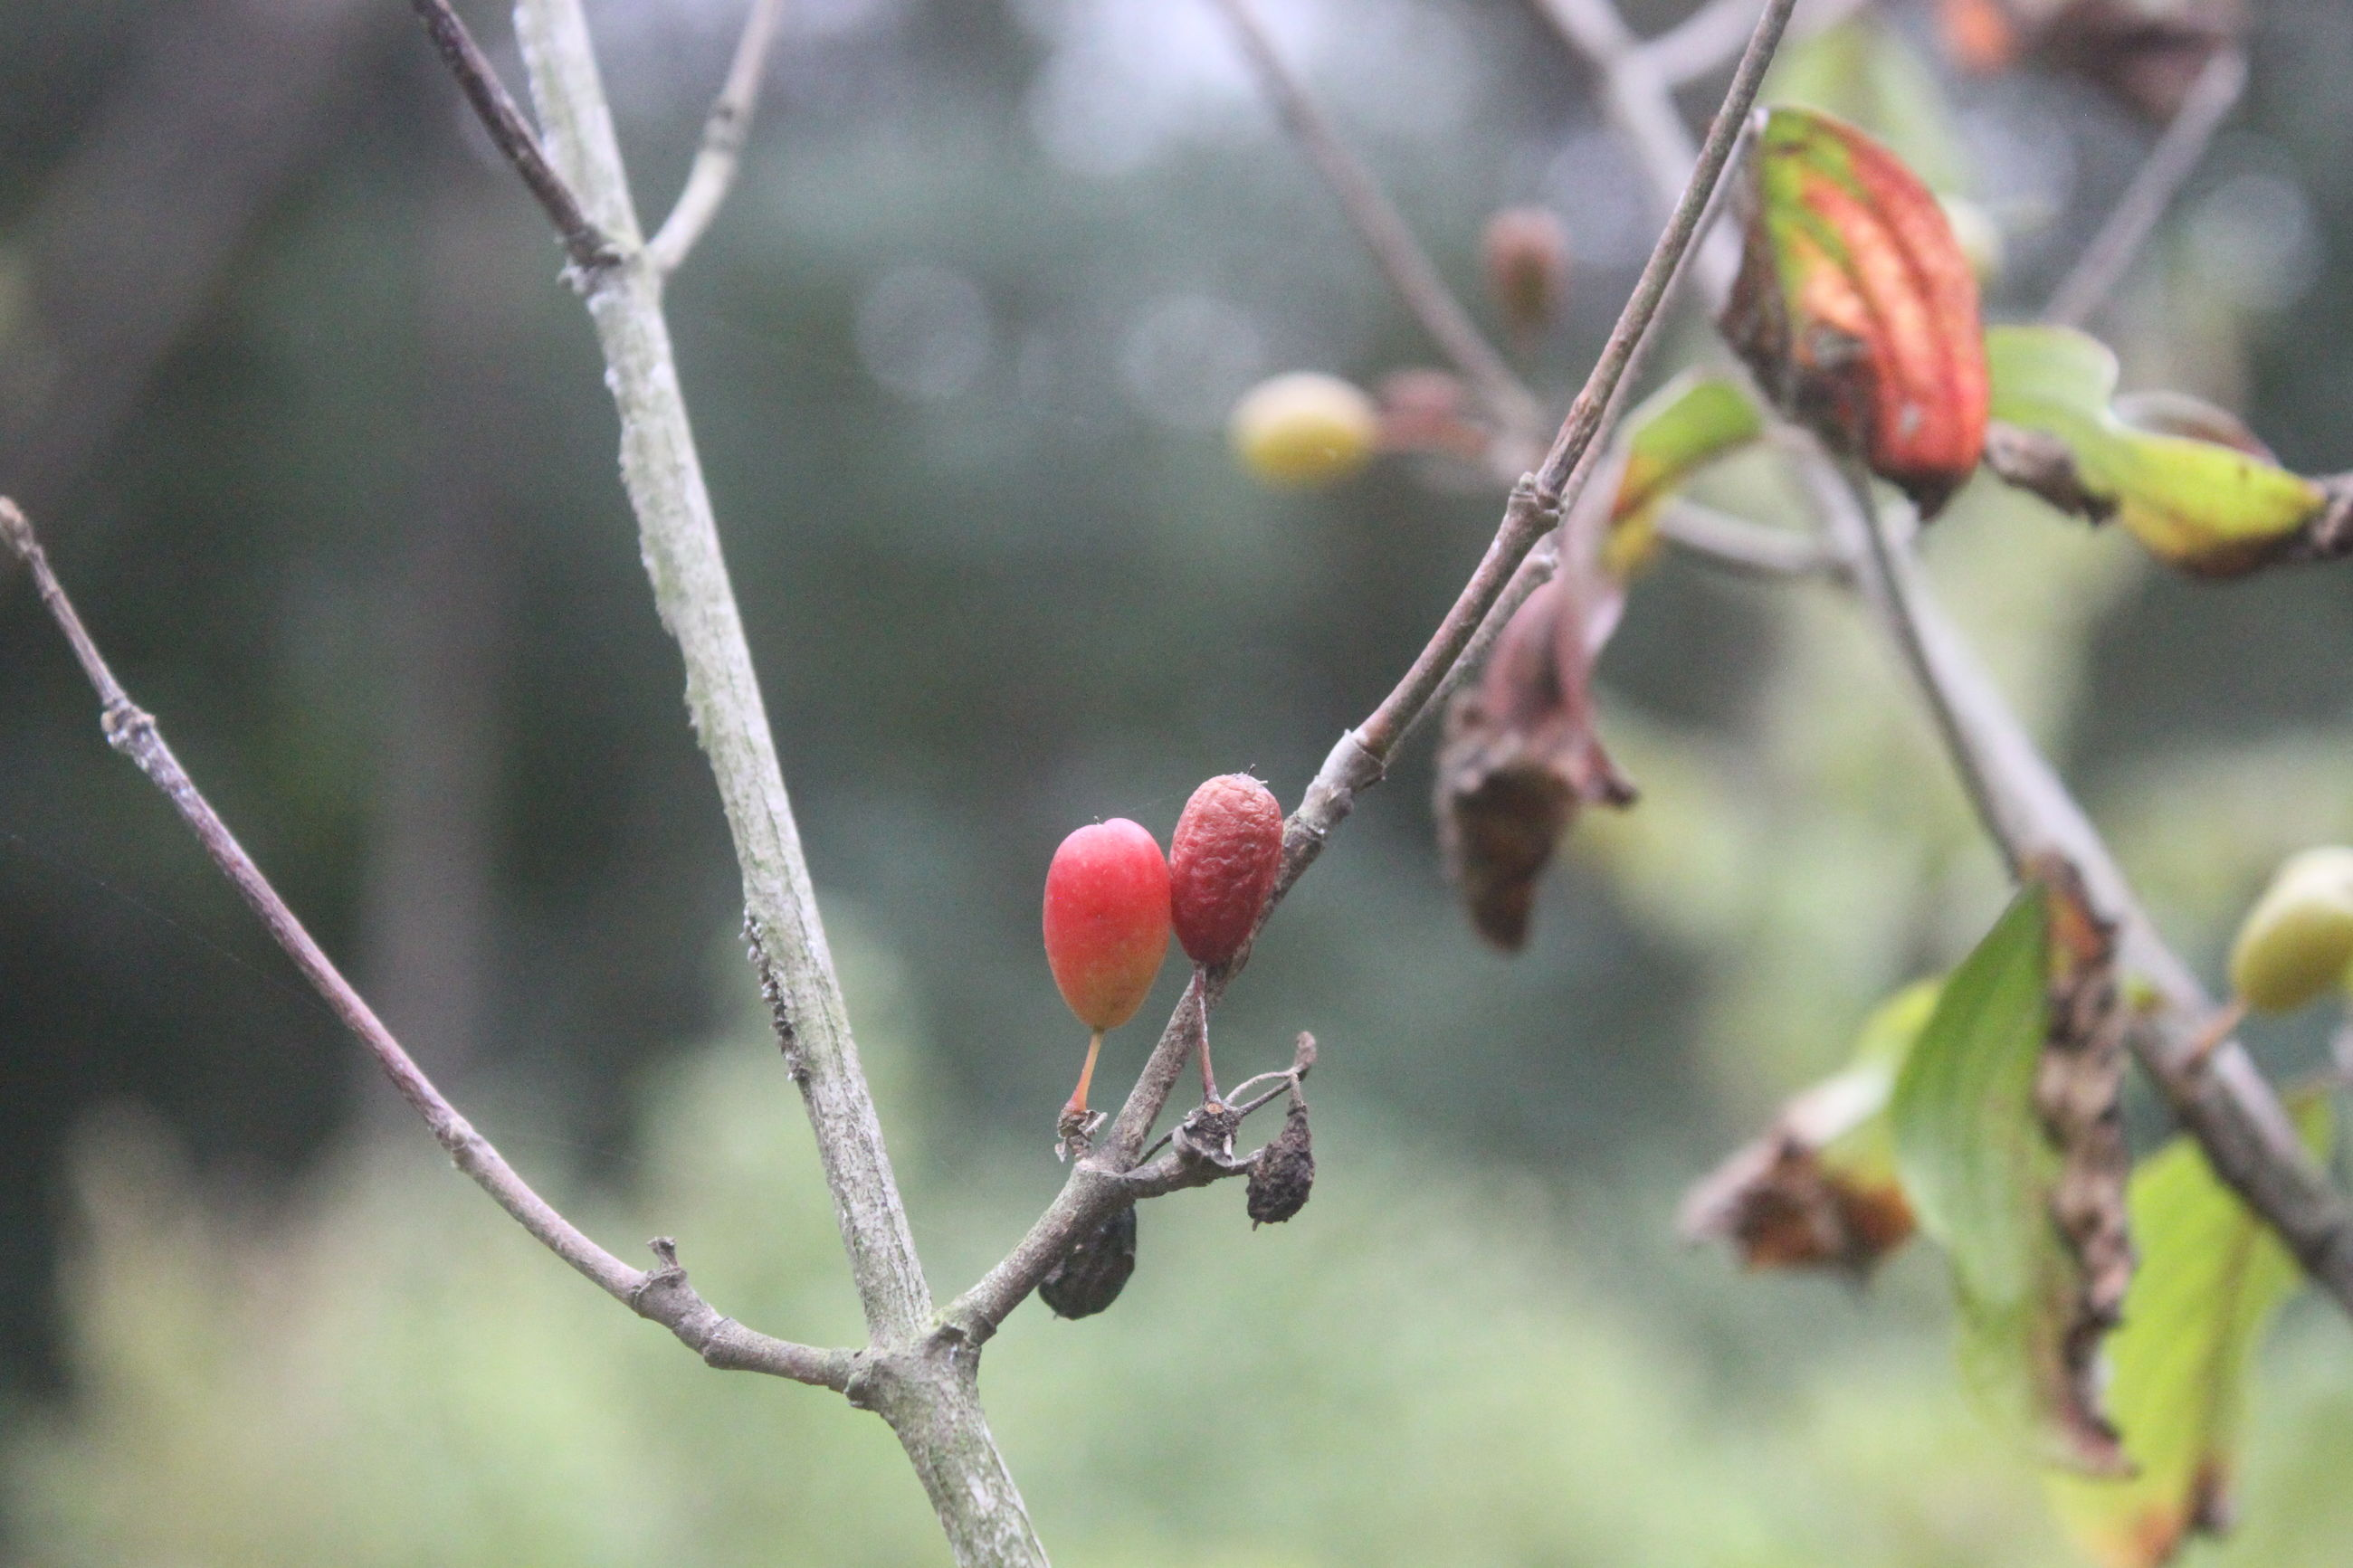 focus on foreground, close-up, growth, tree, branch, twig, stem, red, nature, plant, day, flower, beauty in nature, new life, thorn, outdoors, springtime, fragility, freshness, spiked, berry, vibrant color, tranquility, growing, no people, green